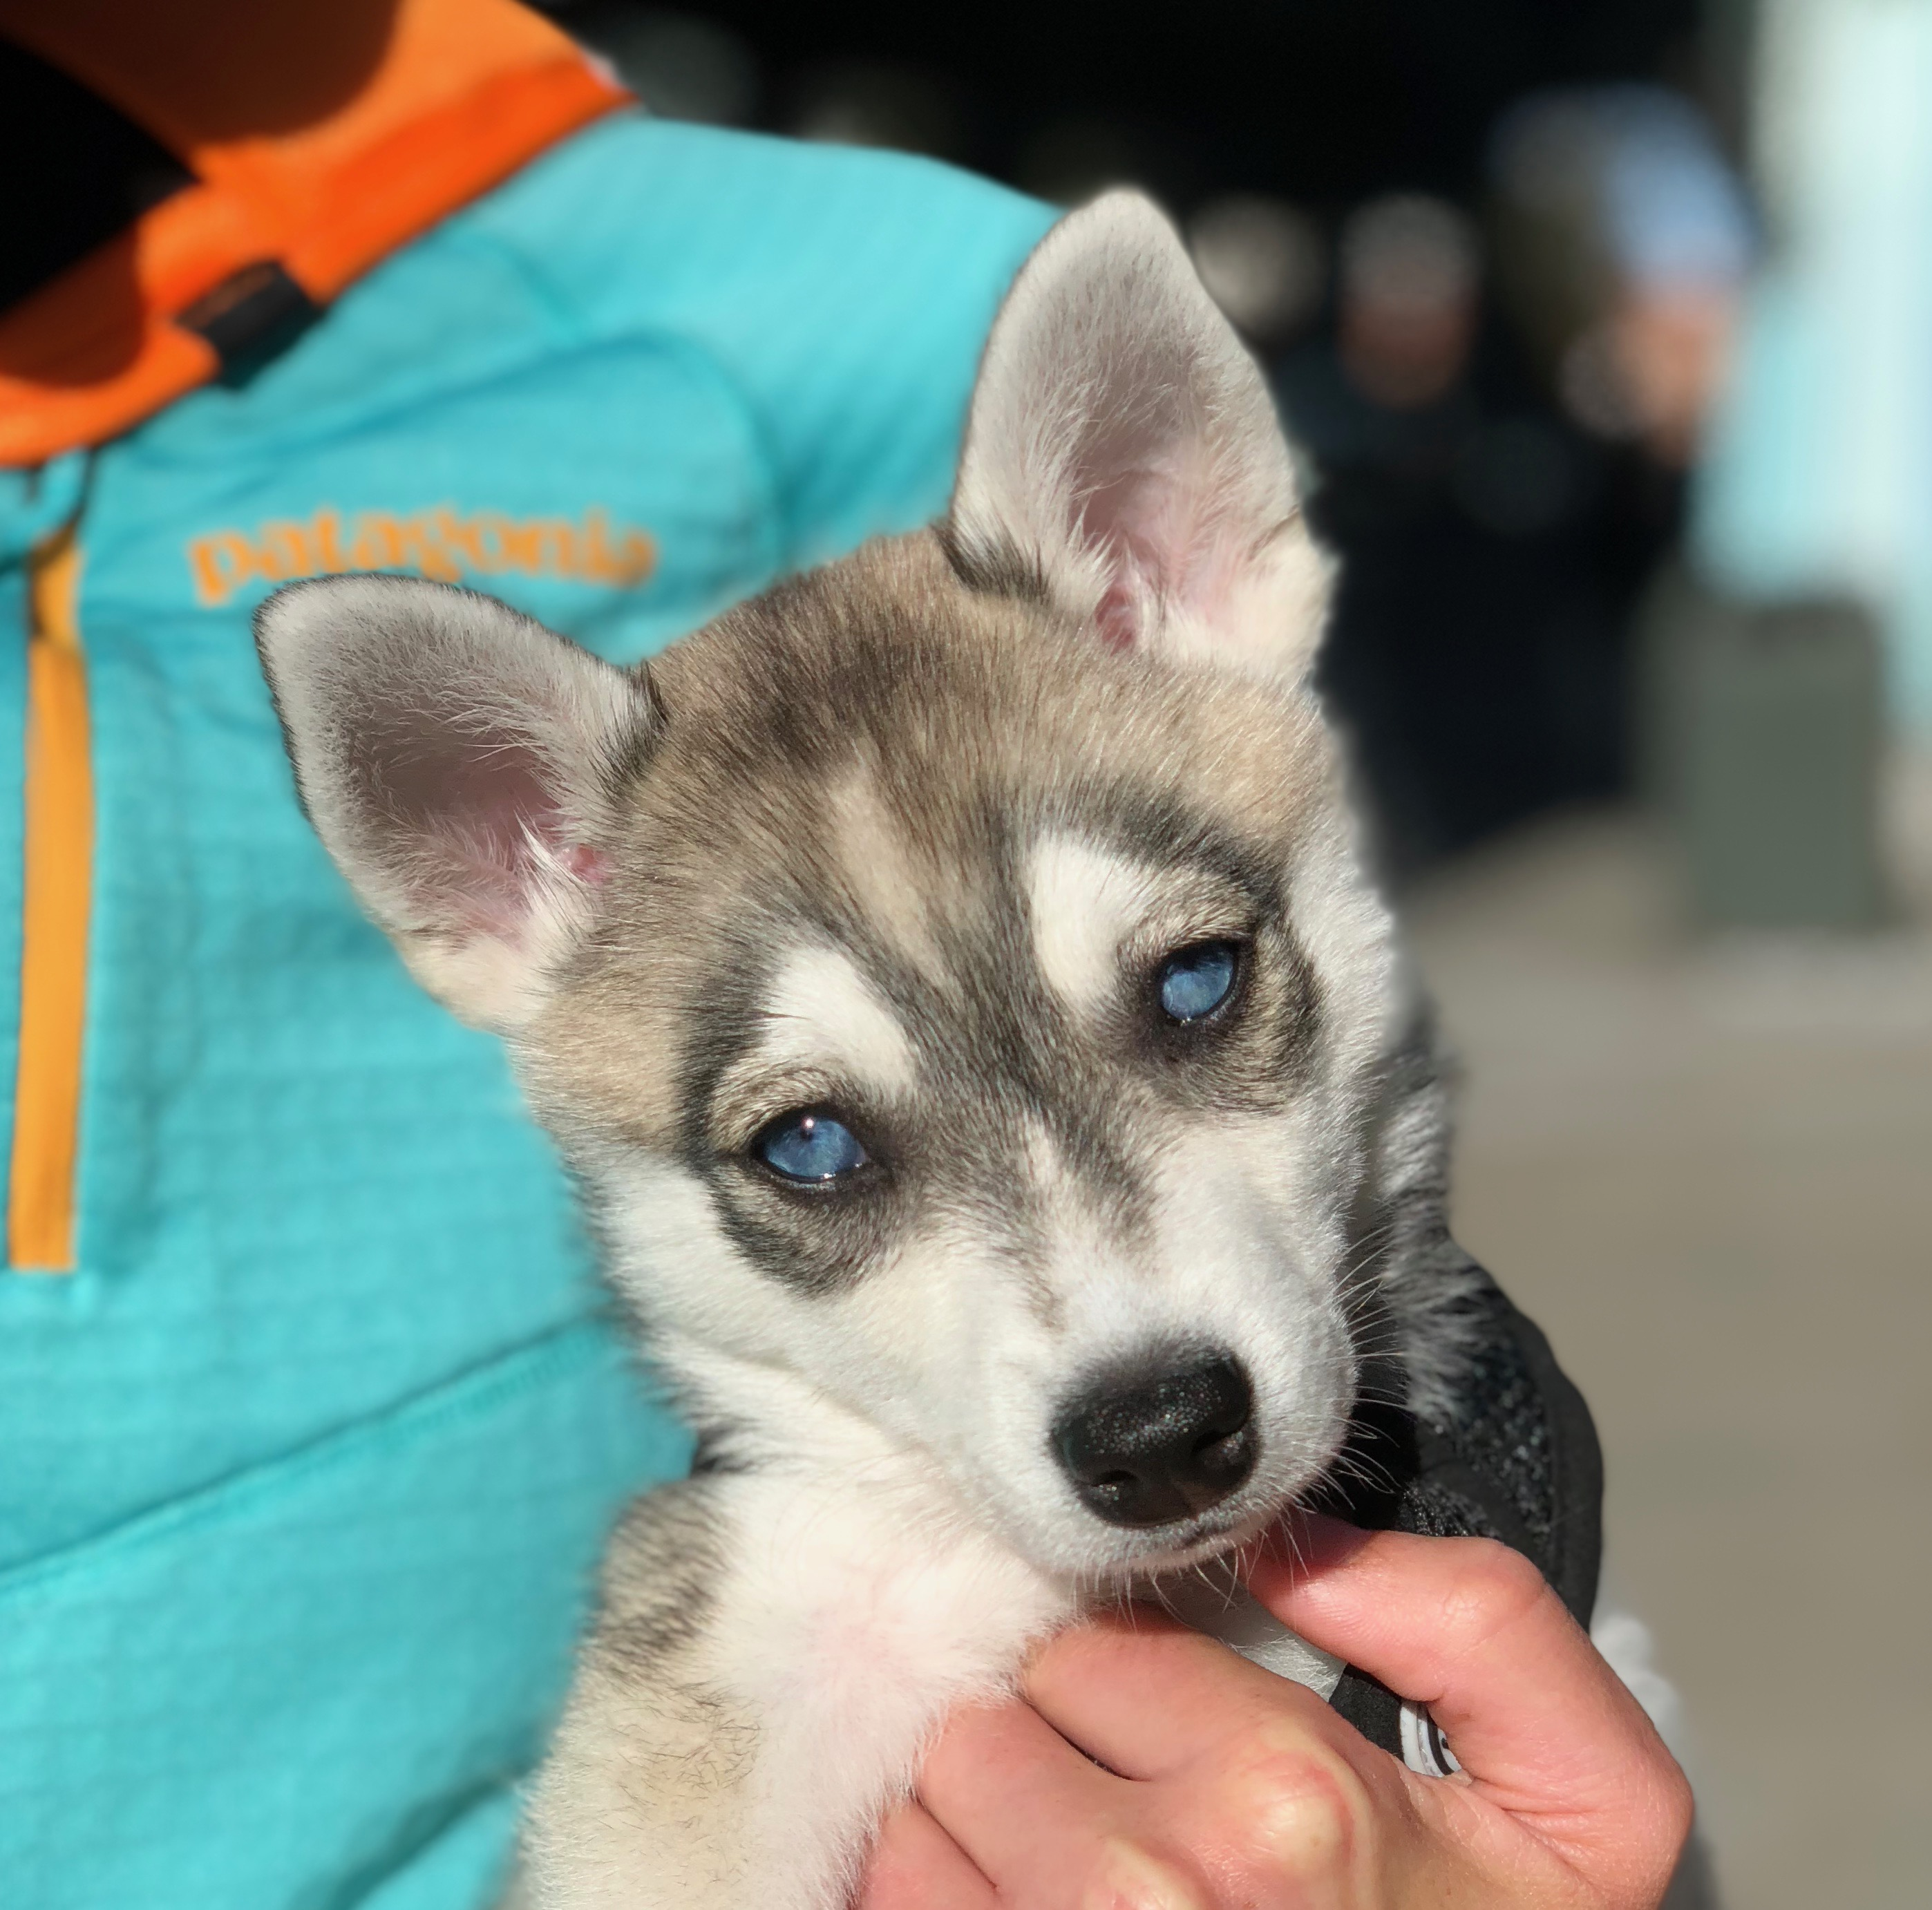 Woman Holding Klee Kai Puppy With Startlingly Blue Eyes